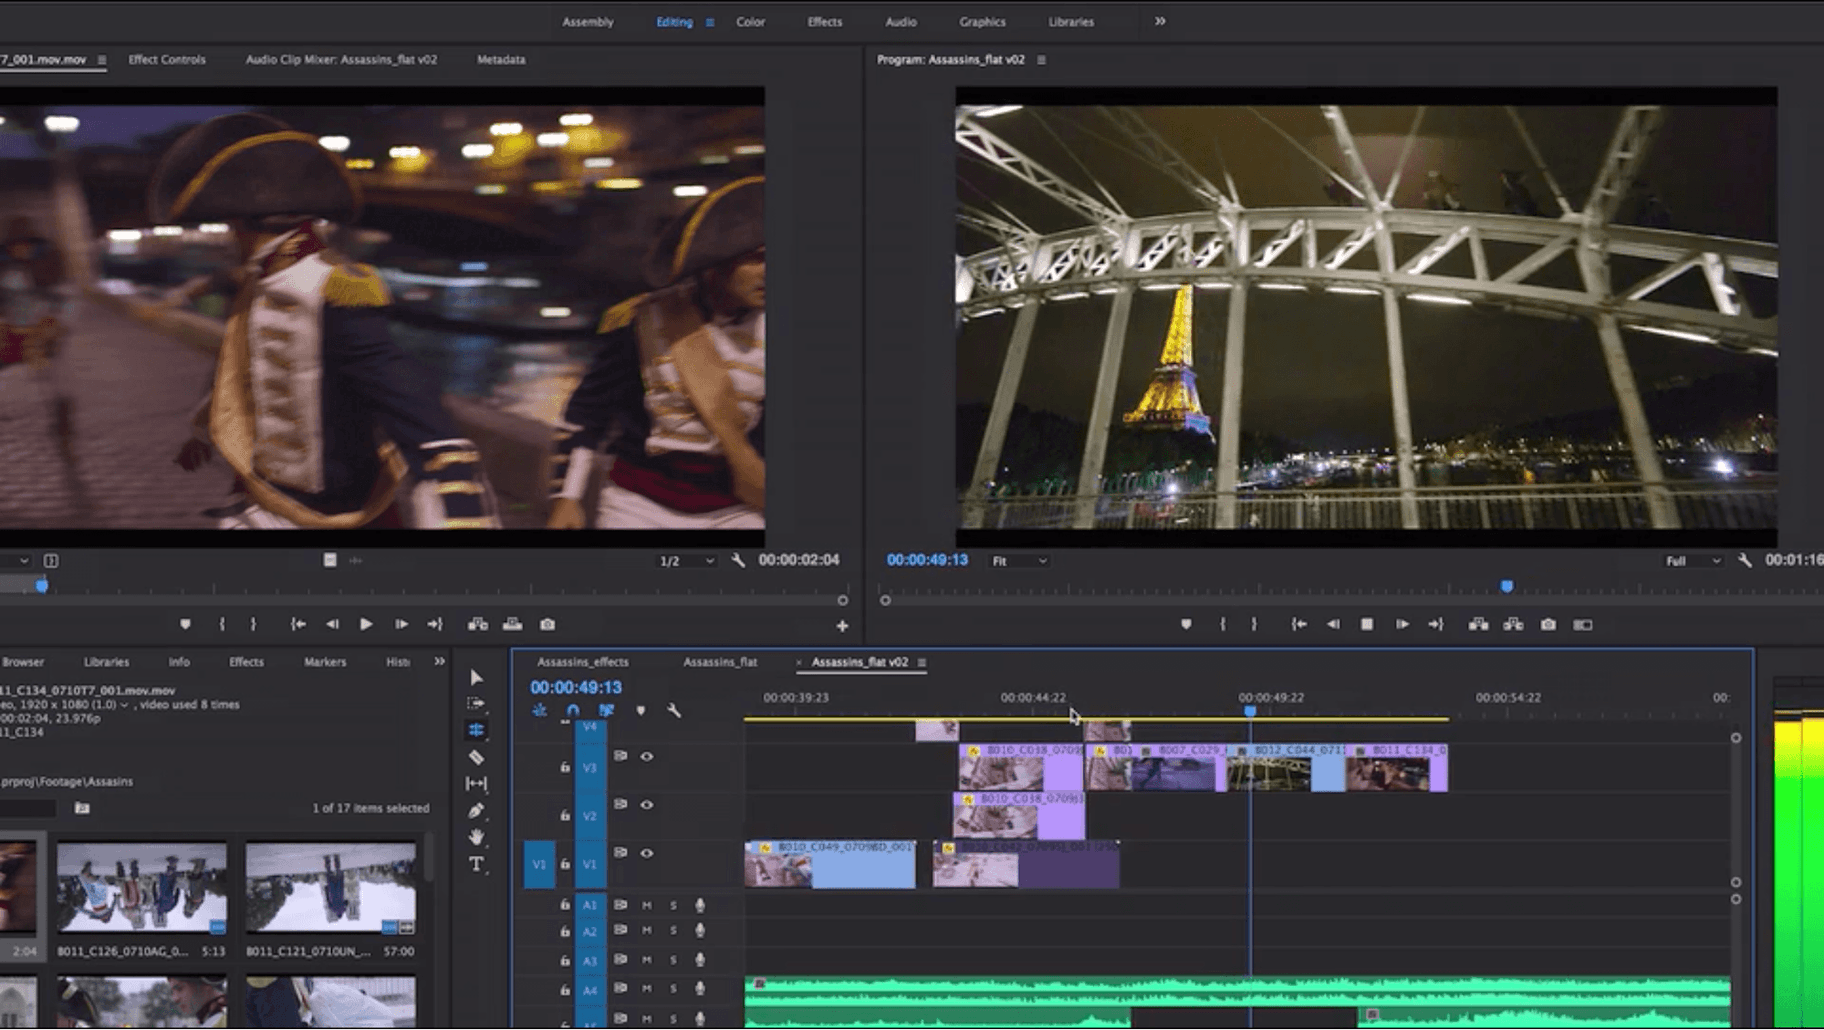 Adobe Premier Pro Video Editor